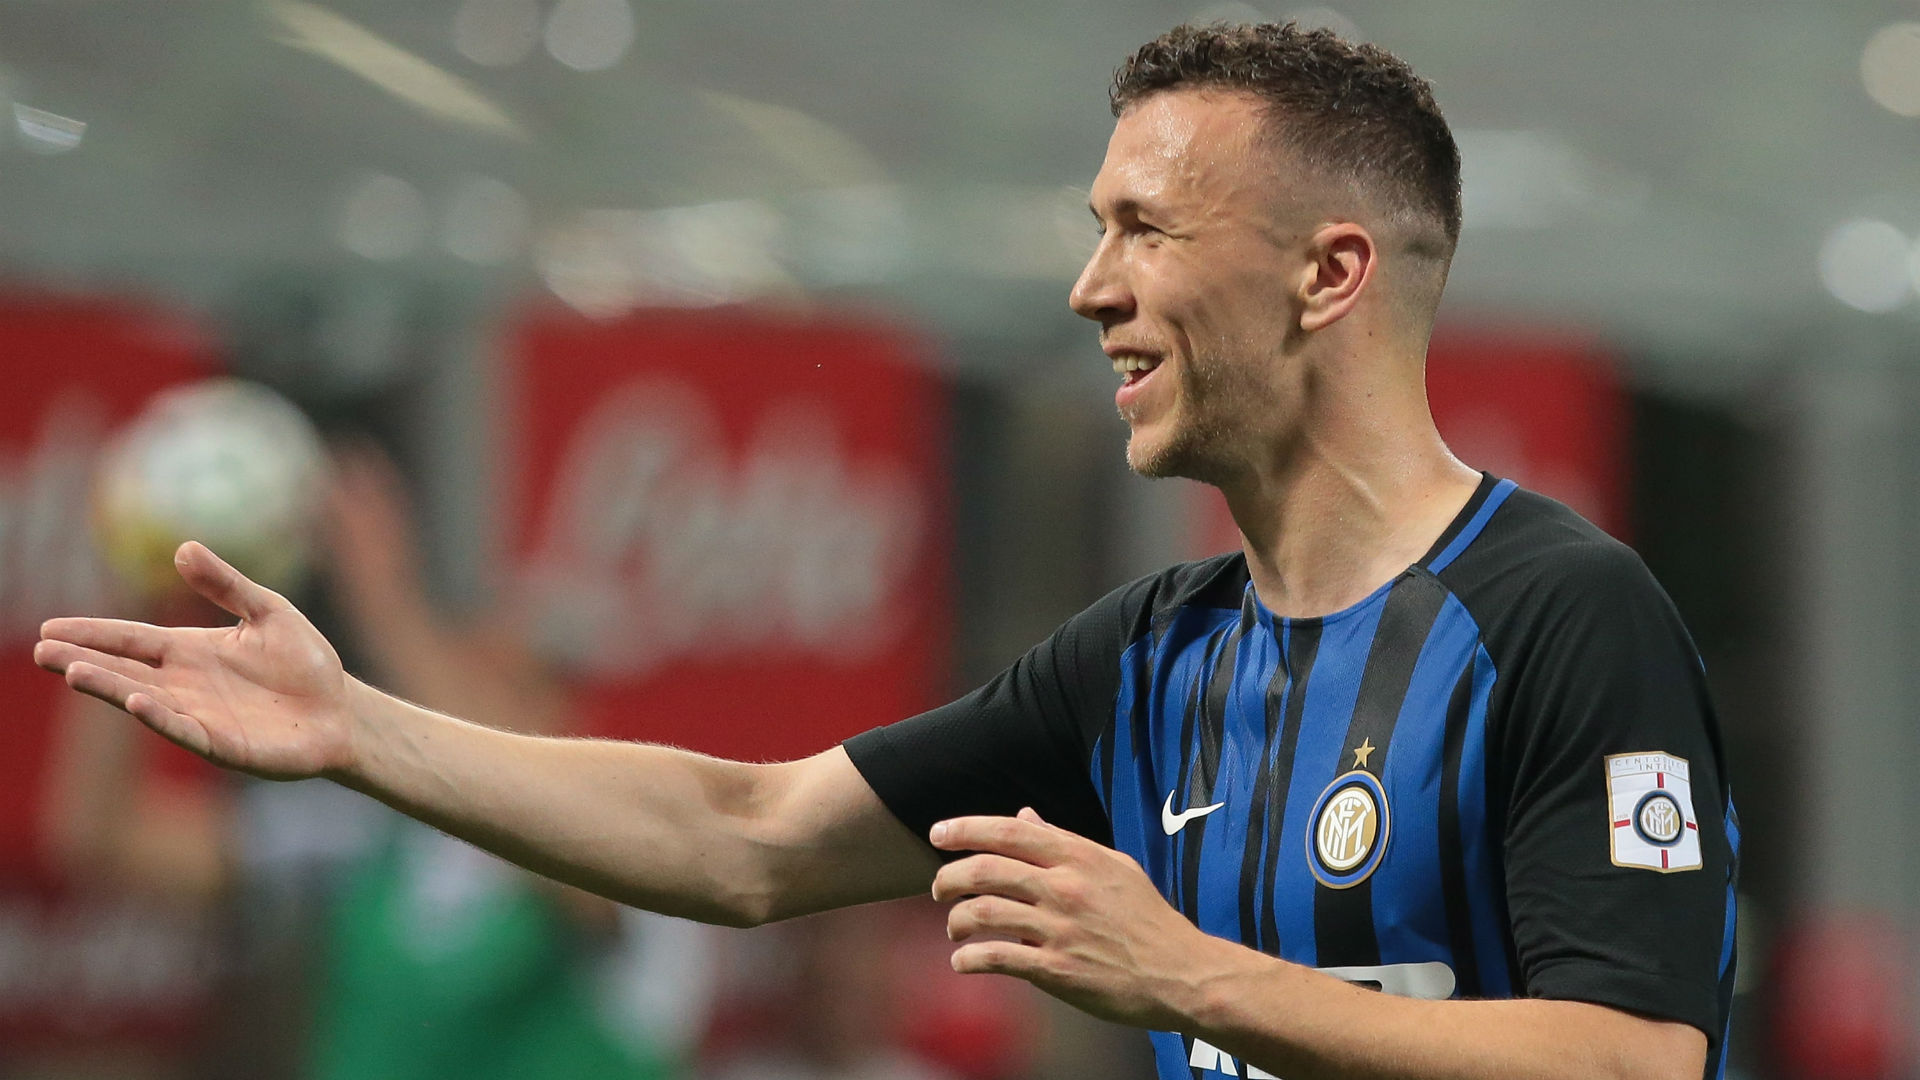 Transfer: Bayern Munich sign Man Utd target, Ivan Perisic